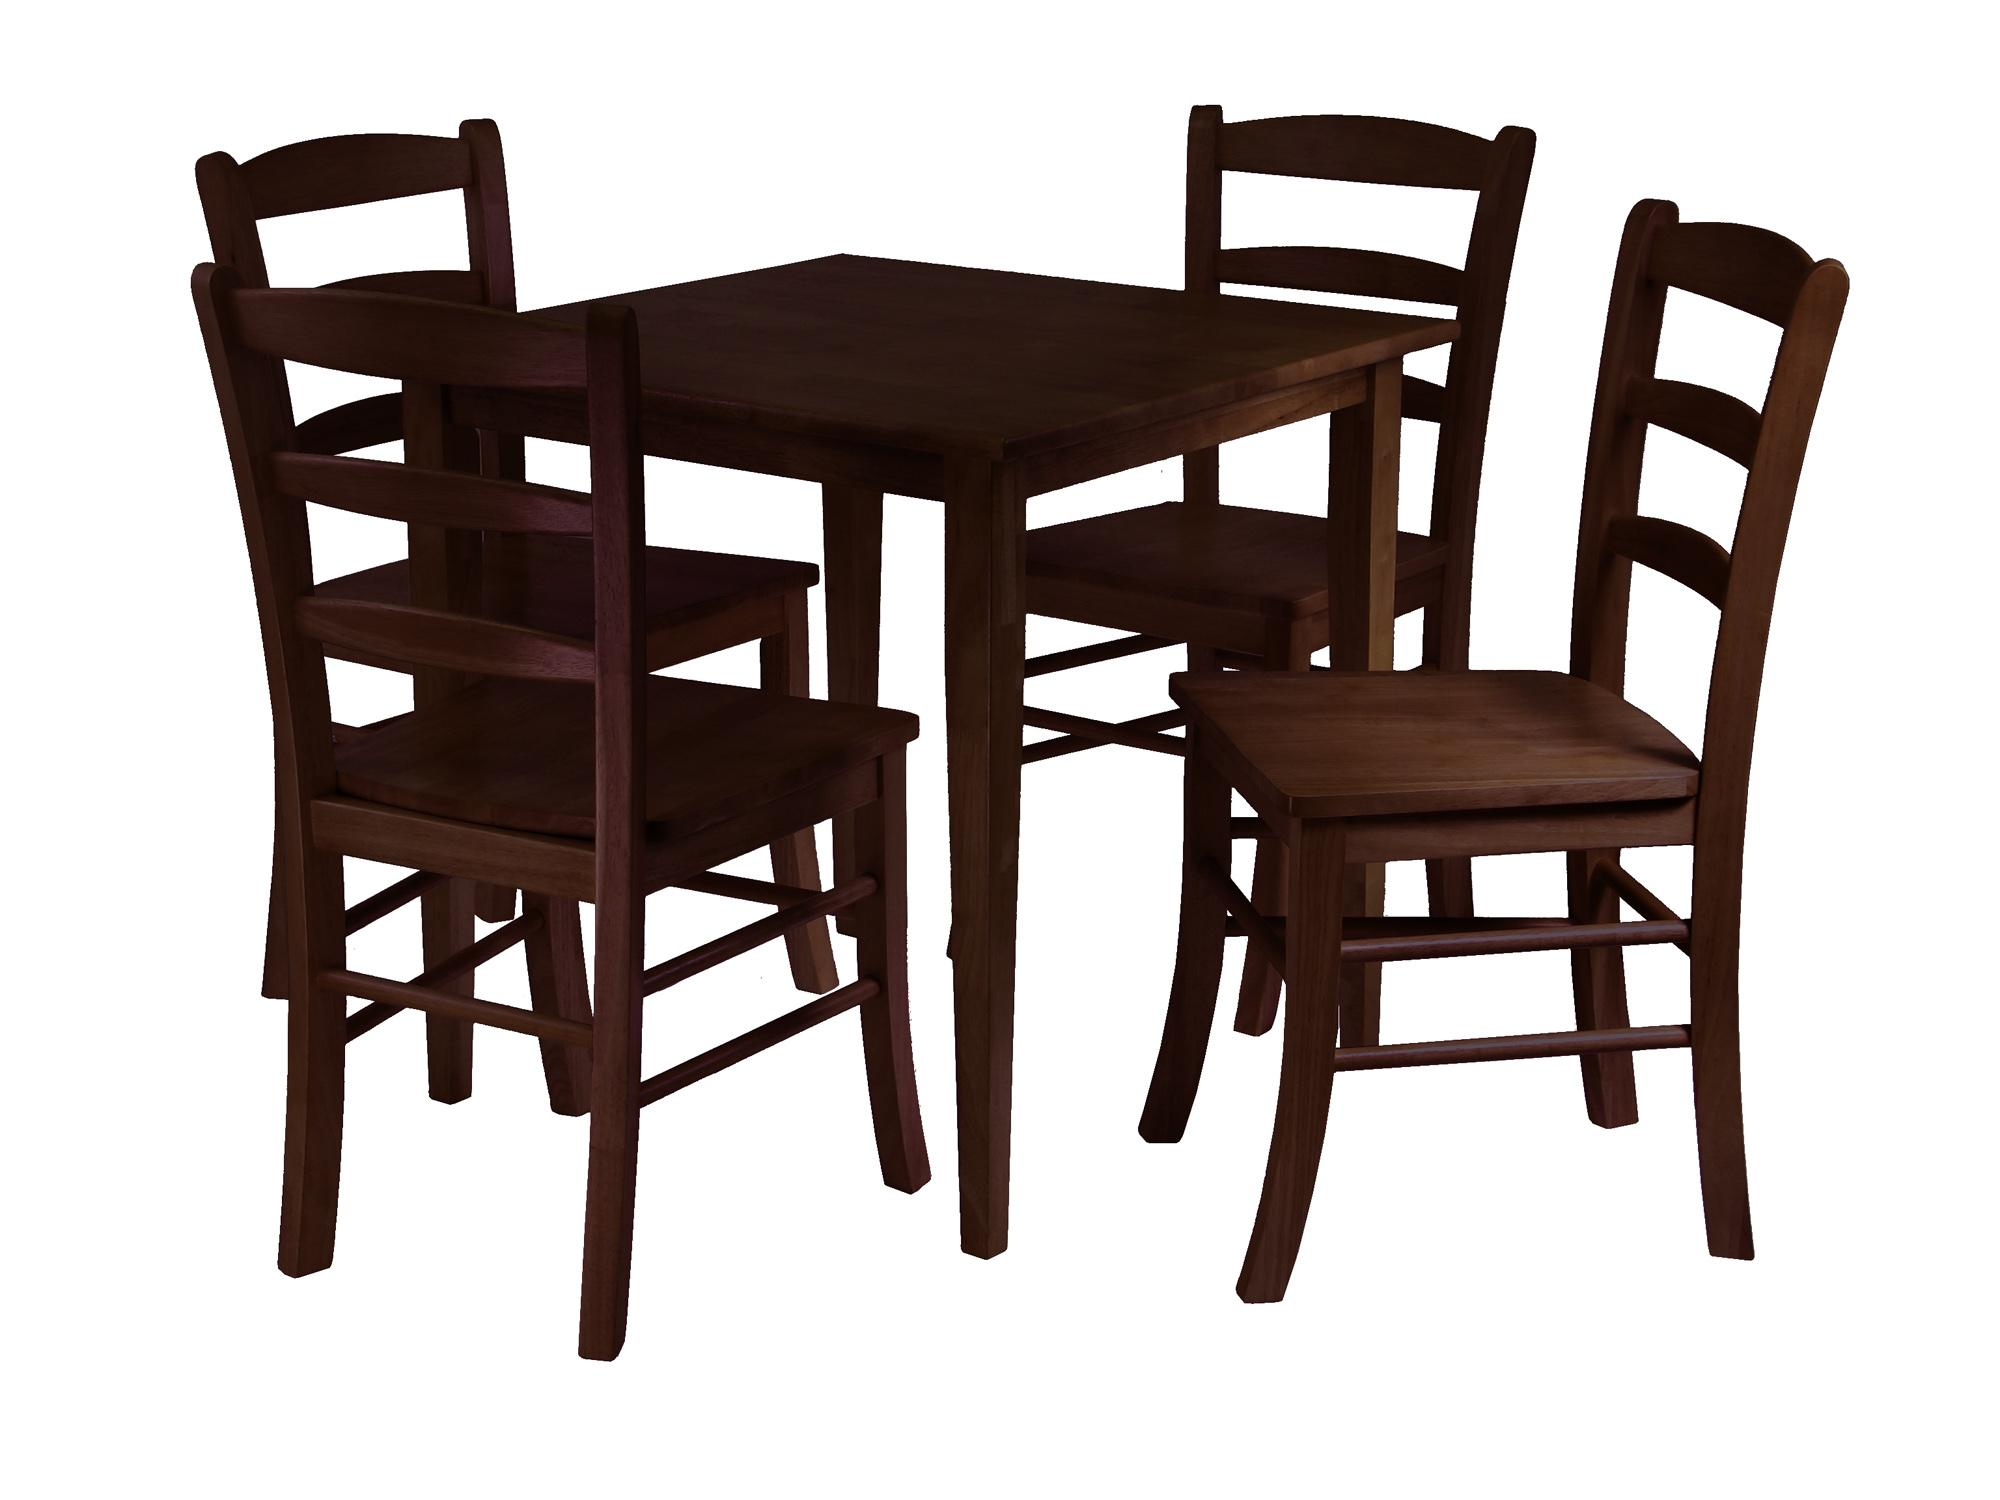 Table clipart breakfast table. Luxury with four chairs